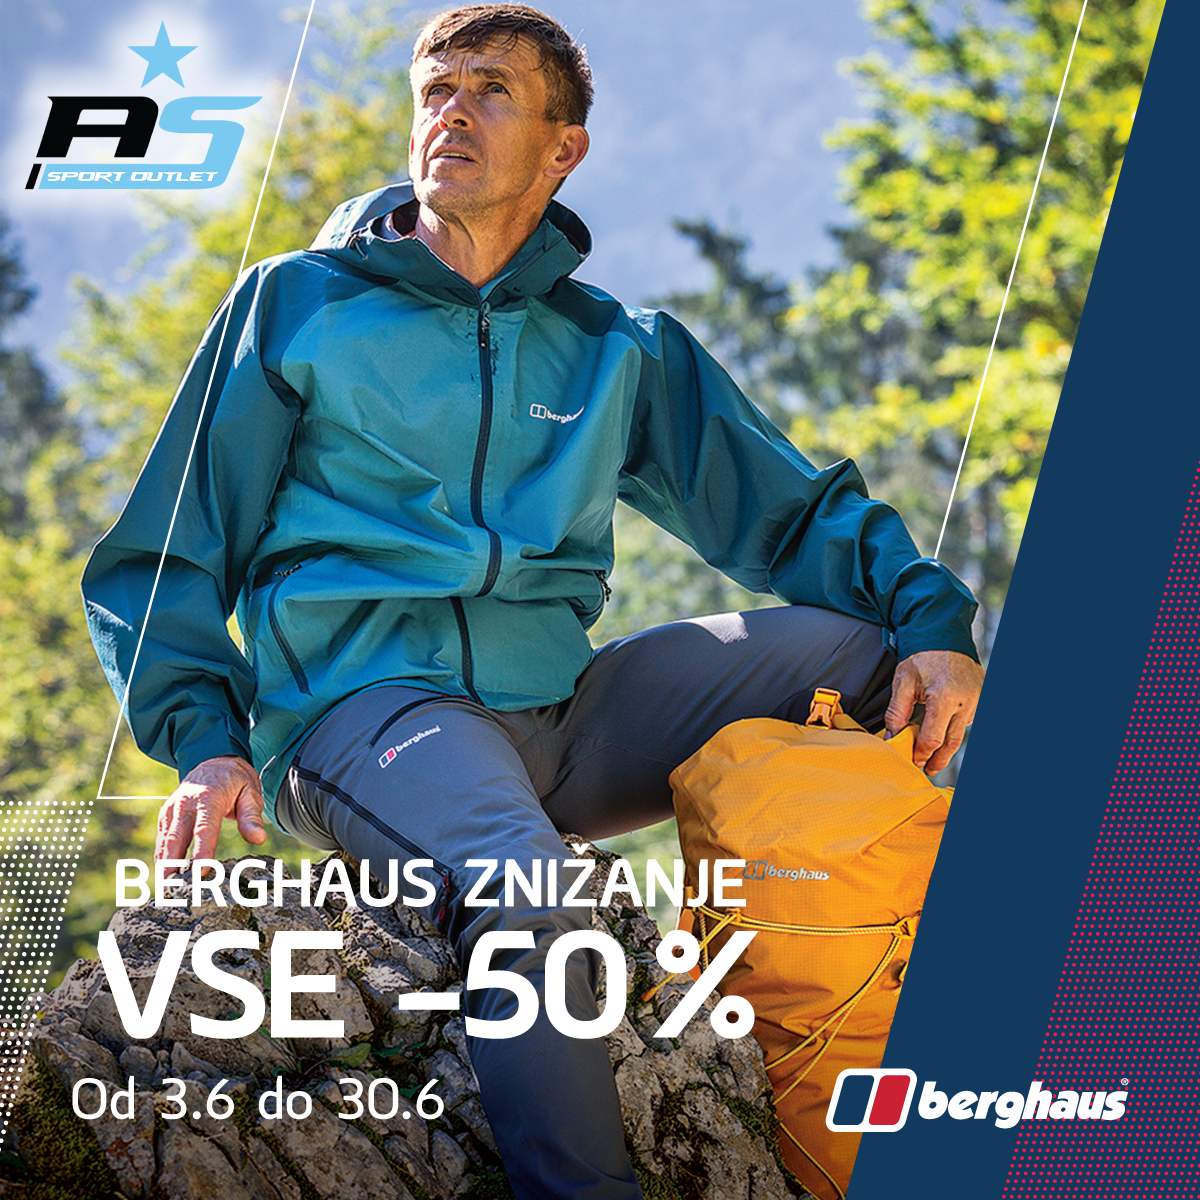 berghaus_facebook_1200x1200_B_AS_sport_akcija